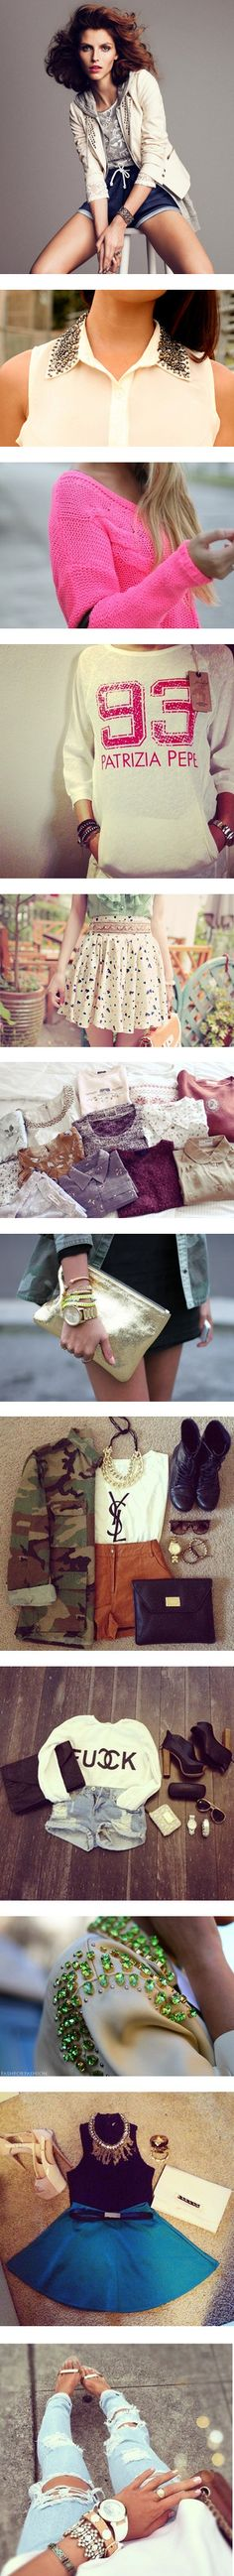 """""""Things that I JUST Uploaded"""" by h0lli ❤ liked on Polyvore"""